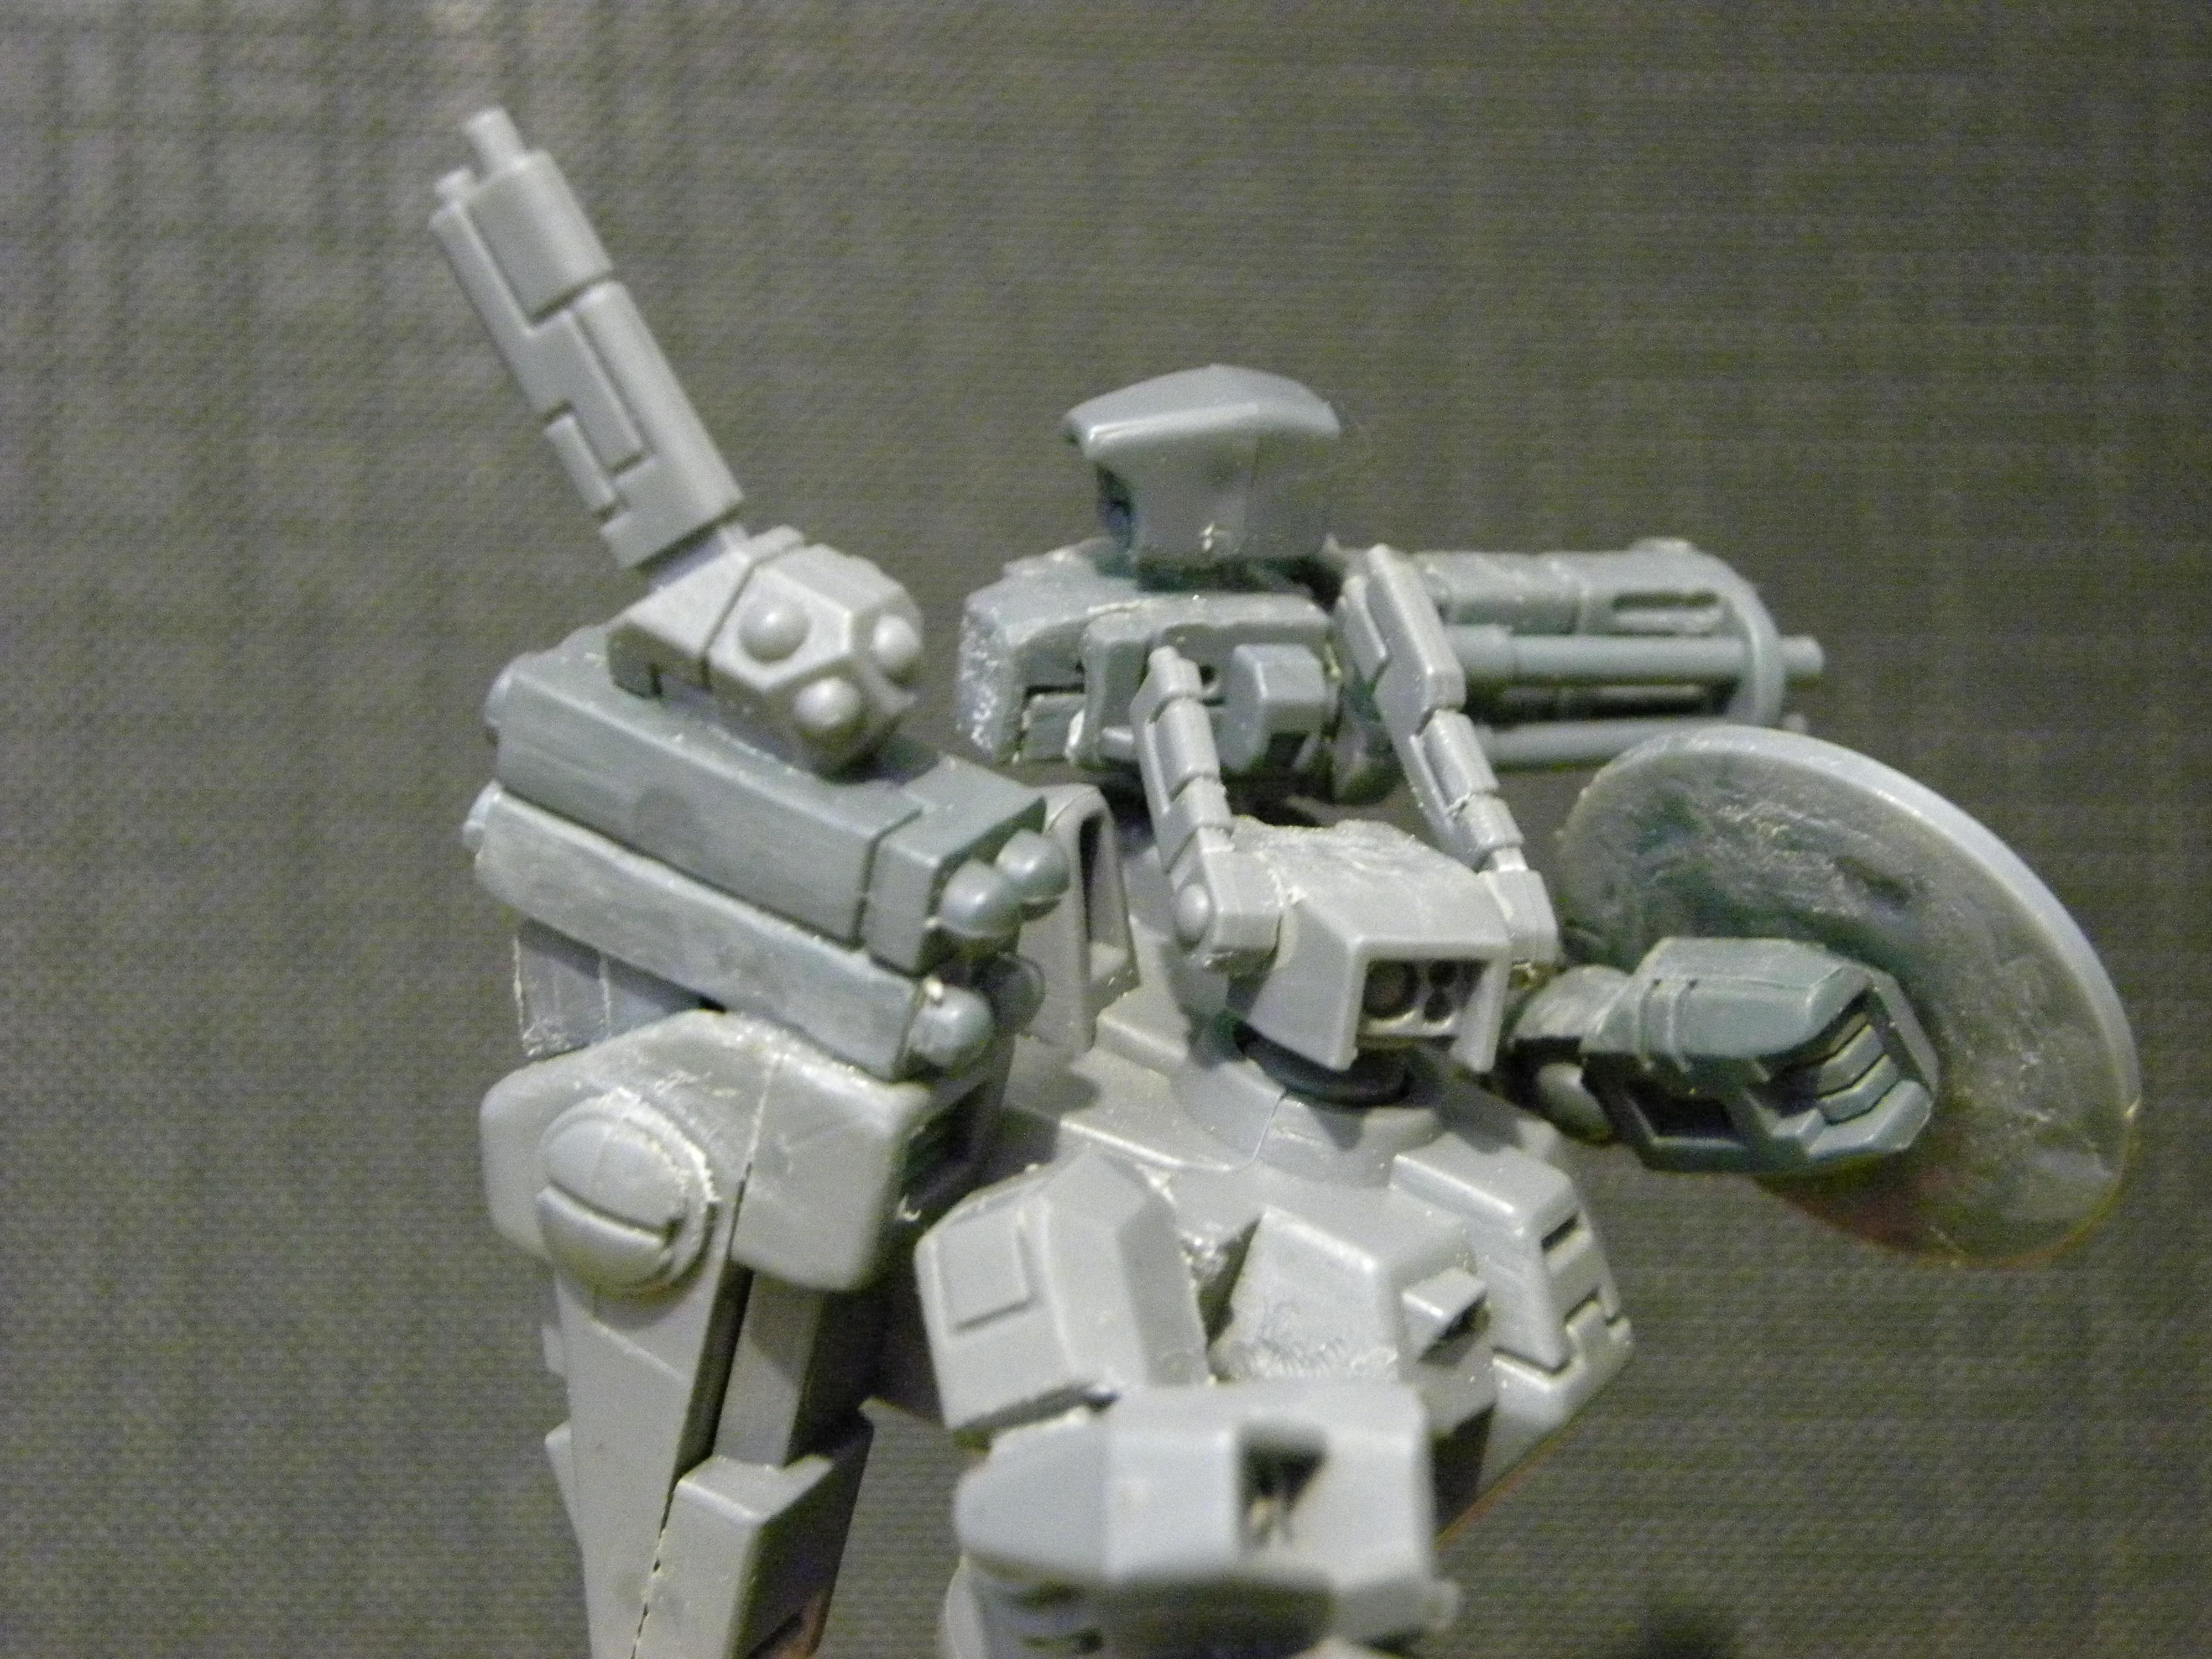 Army, Battle, Conversion, Crisis Battlesuit, Suit, Tau, Warhammer 40,000, Work In Progress, XV8